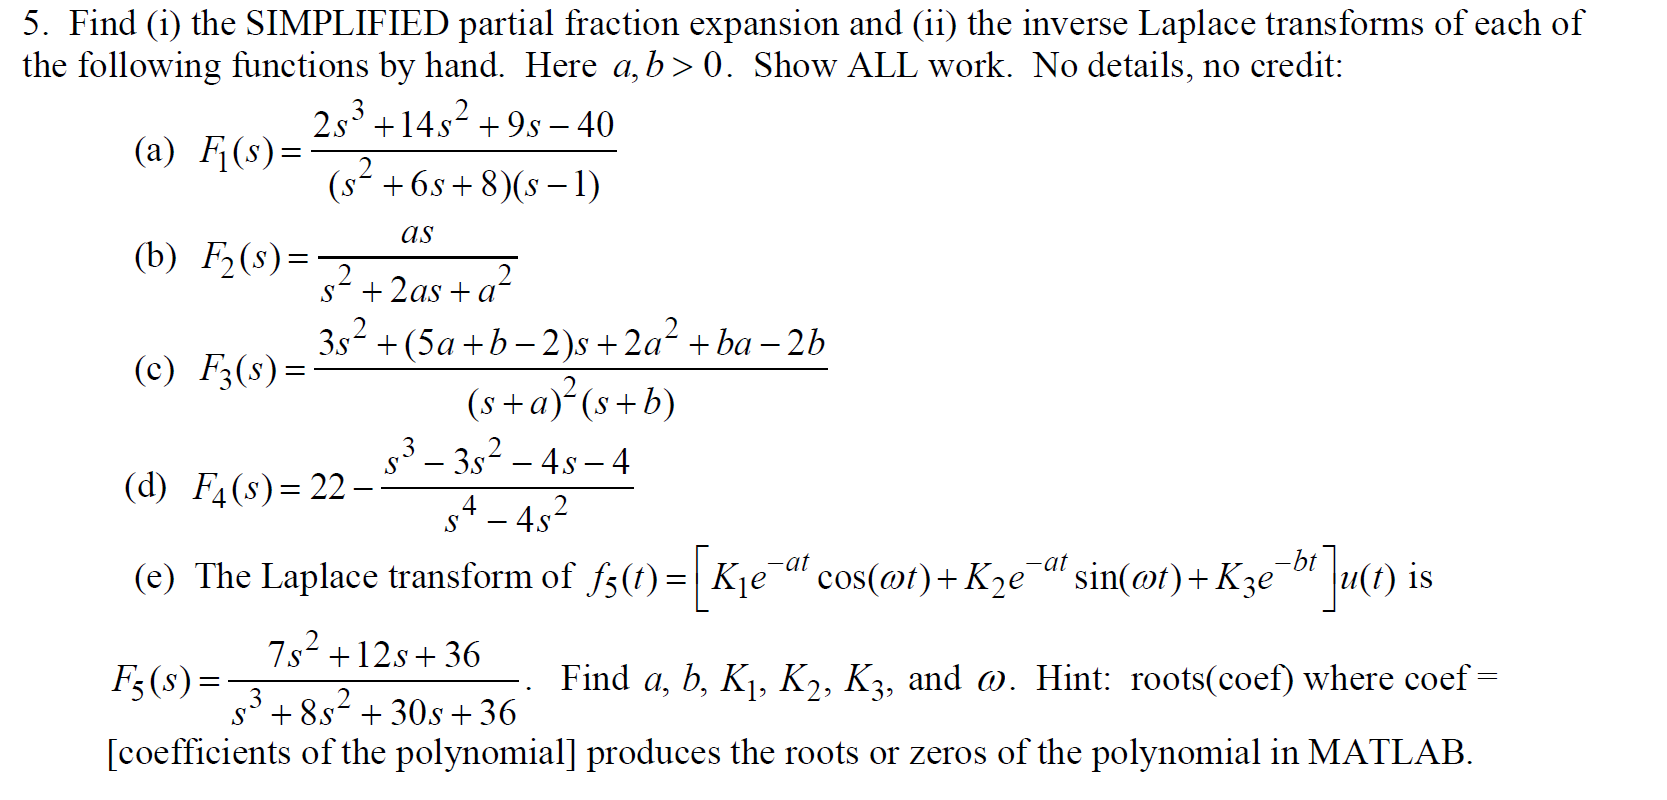 Find (i) the SIMPLIFIED partial fraction expansion